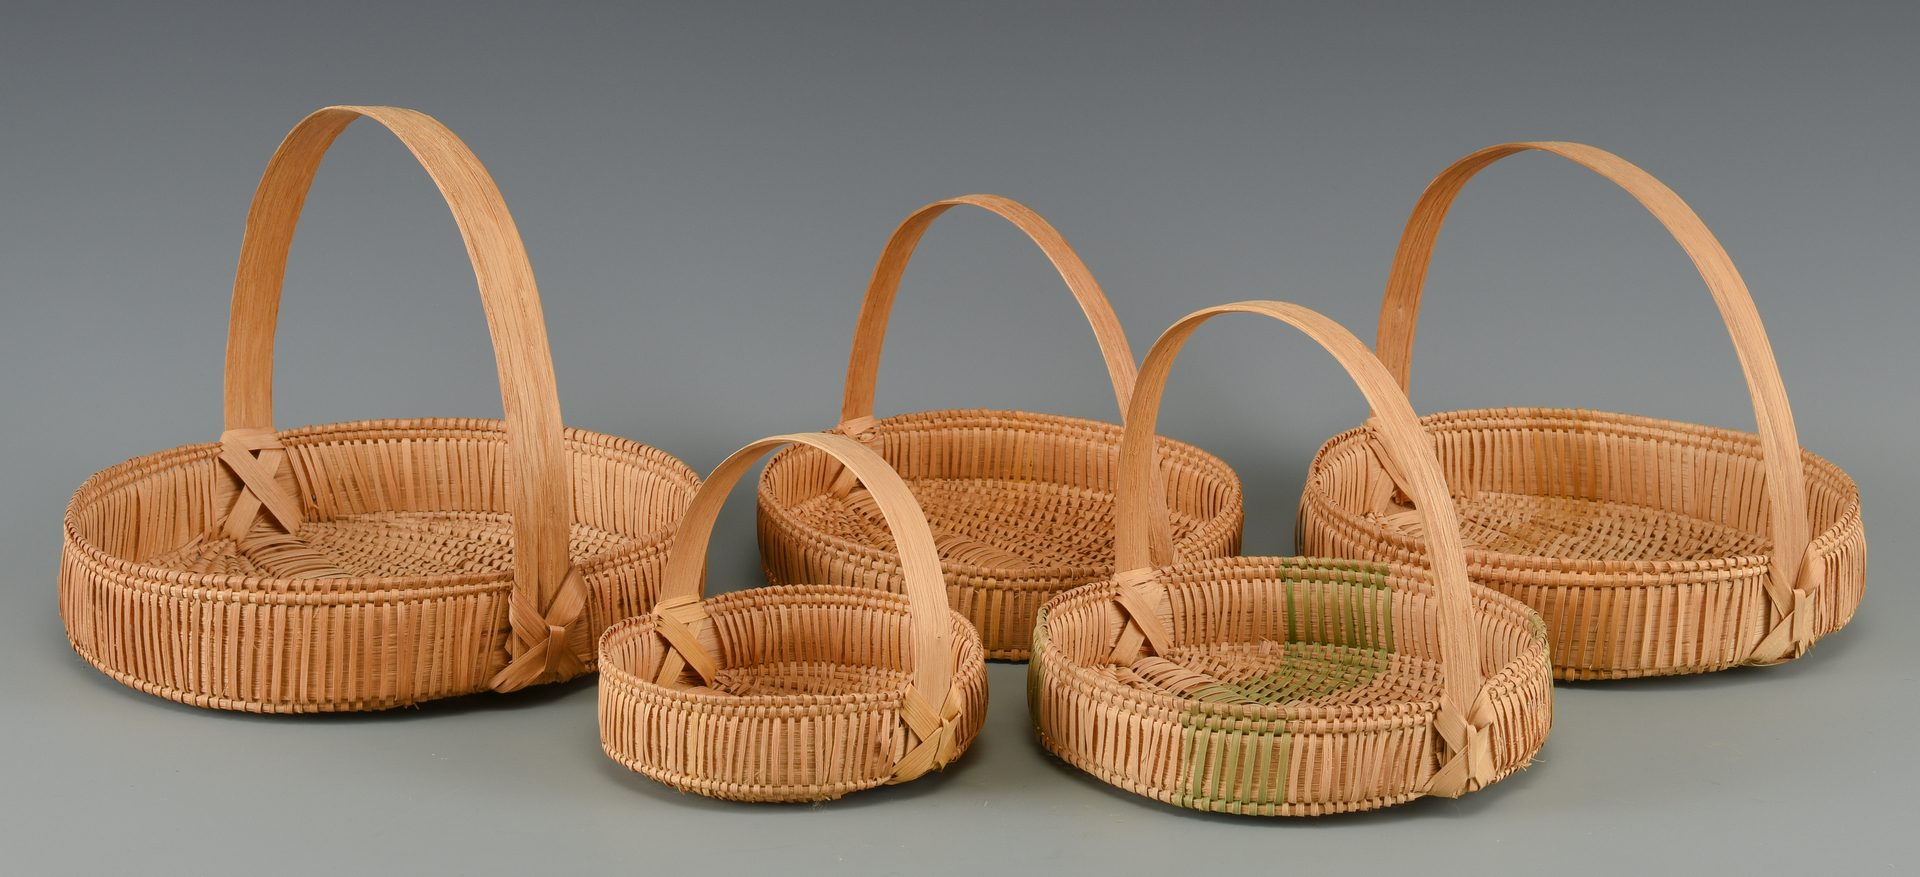 Lot 637: 5 TN Pie Baskets, Mary Prater